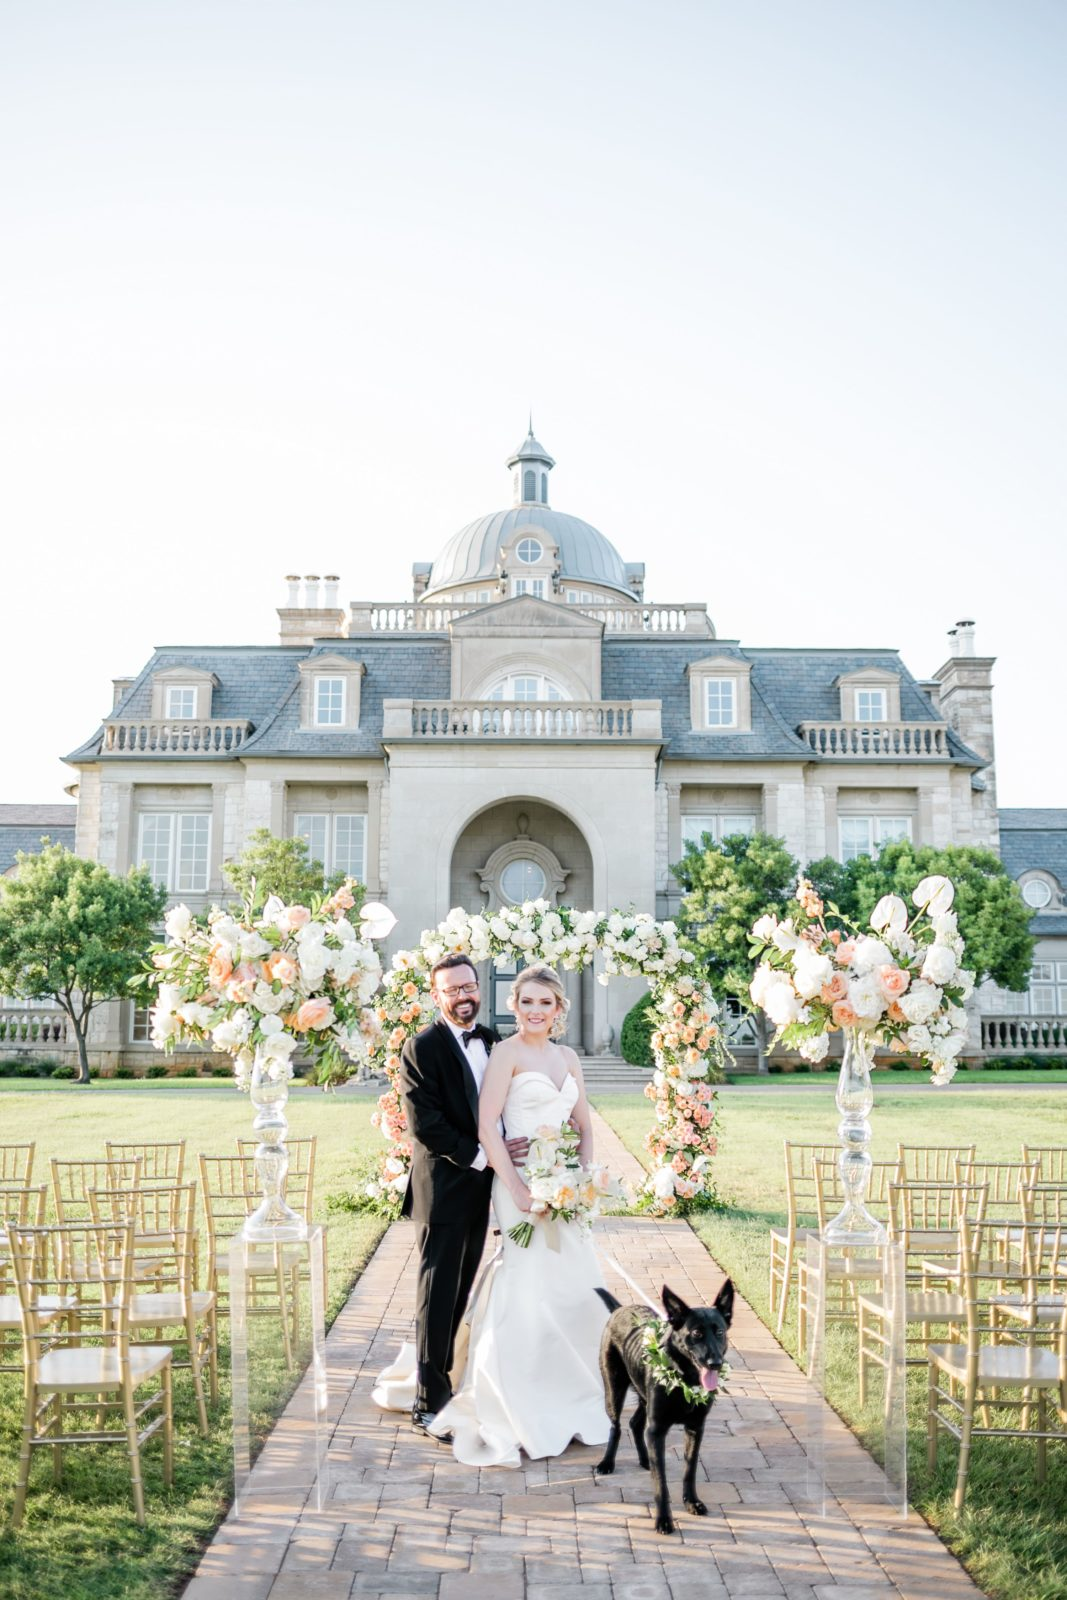 Sophisticated and Chic wedding inspiration on Alexa Kay Events